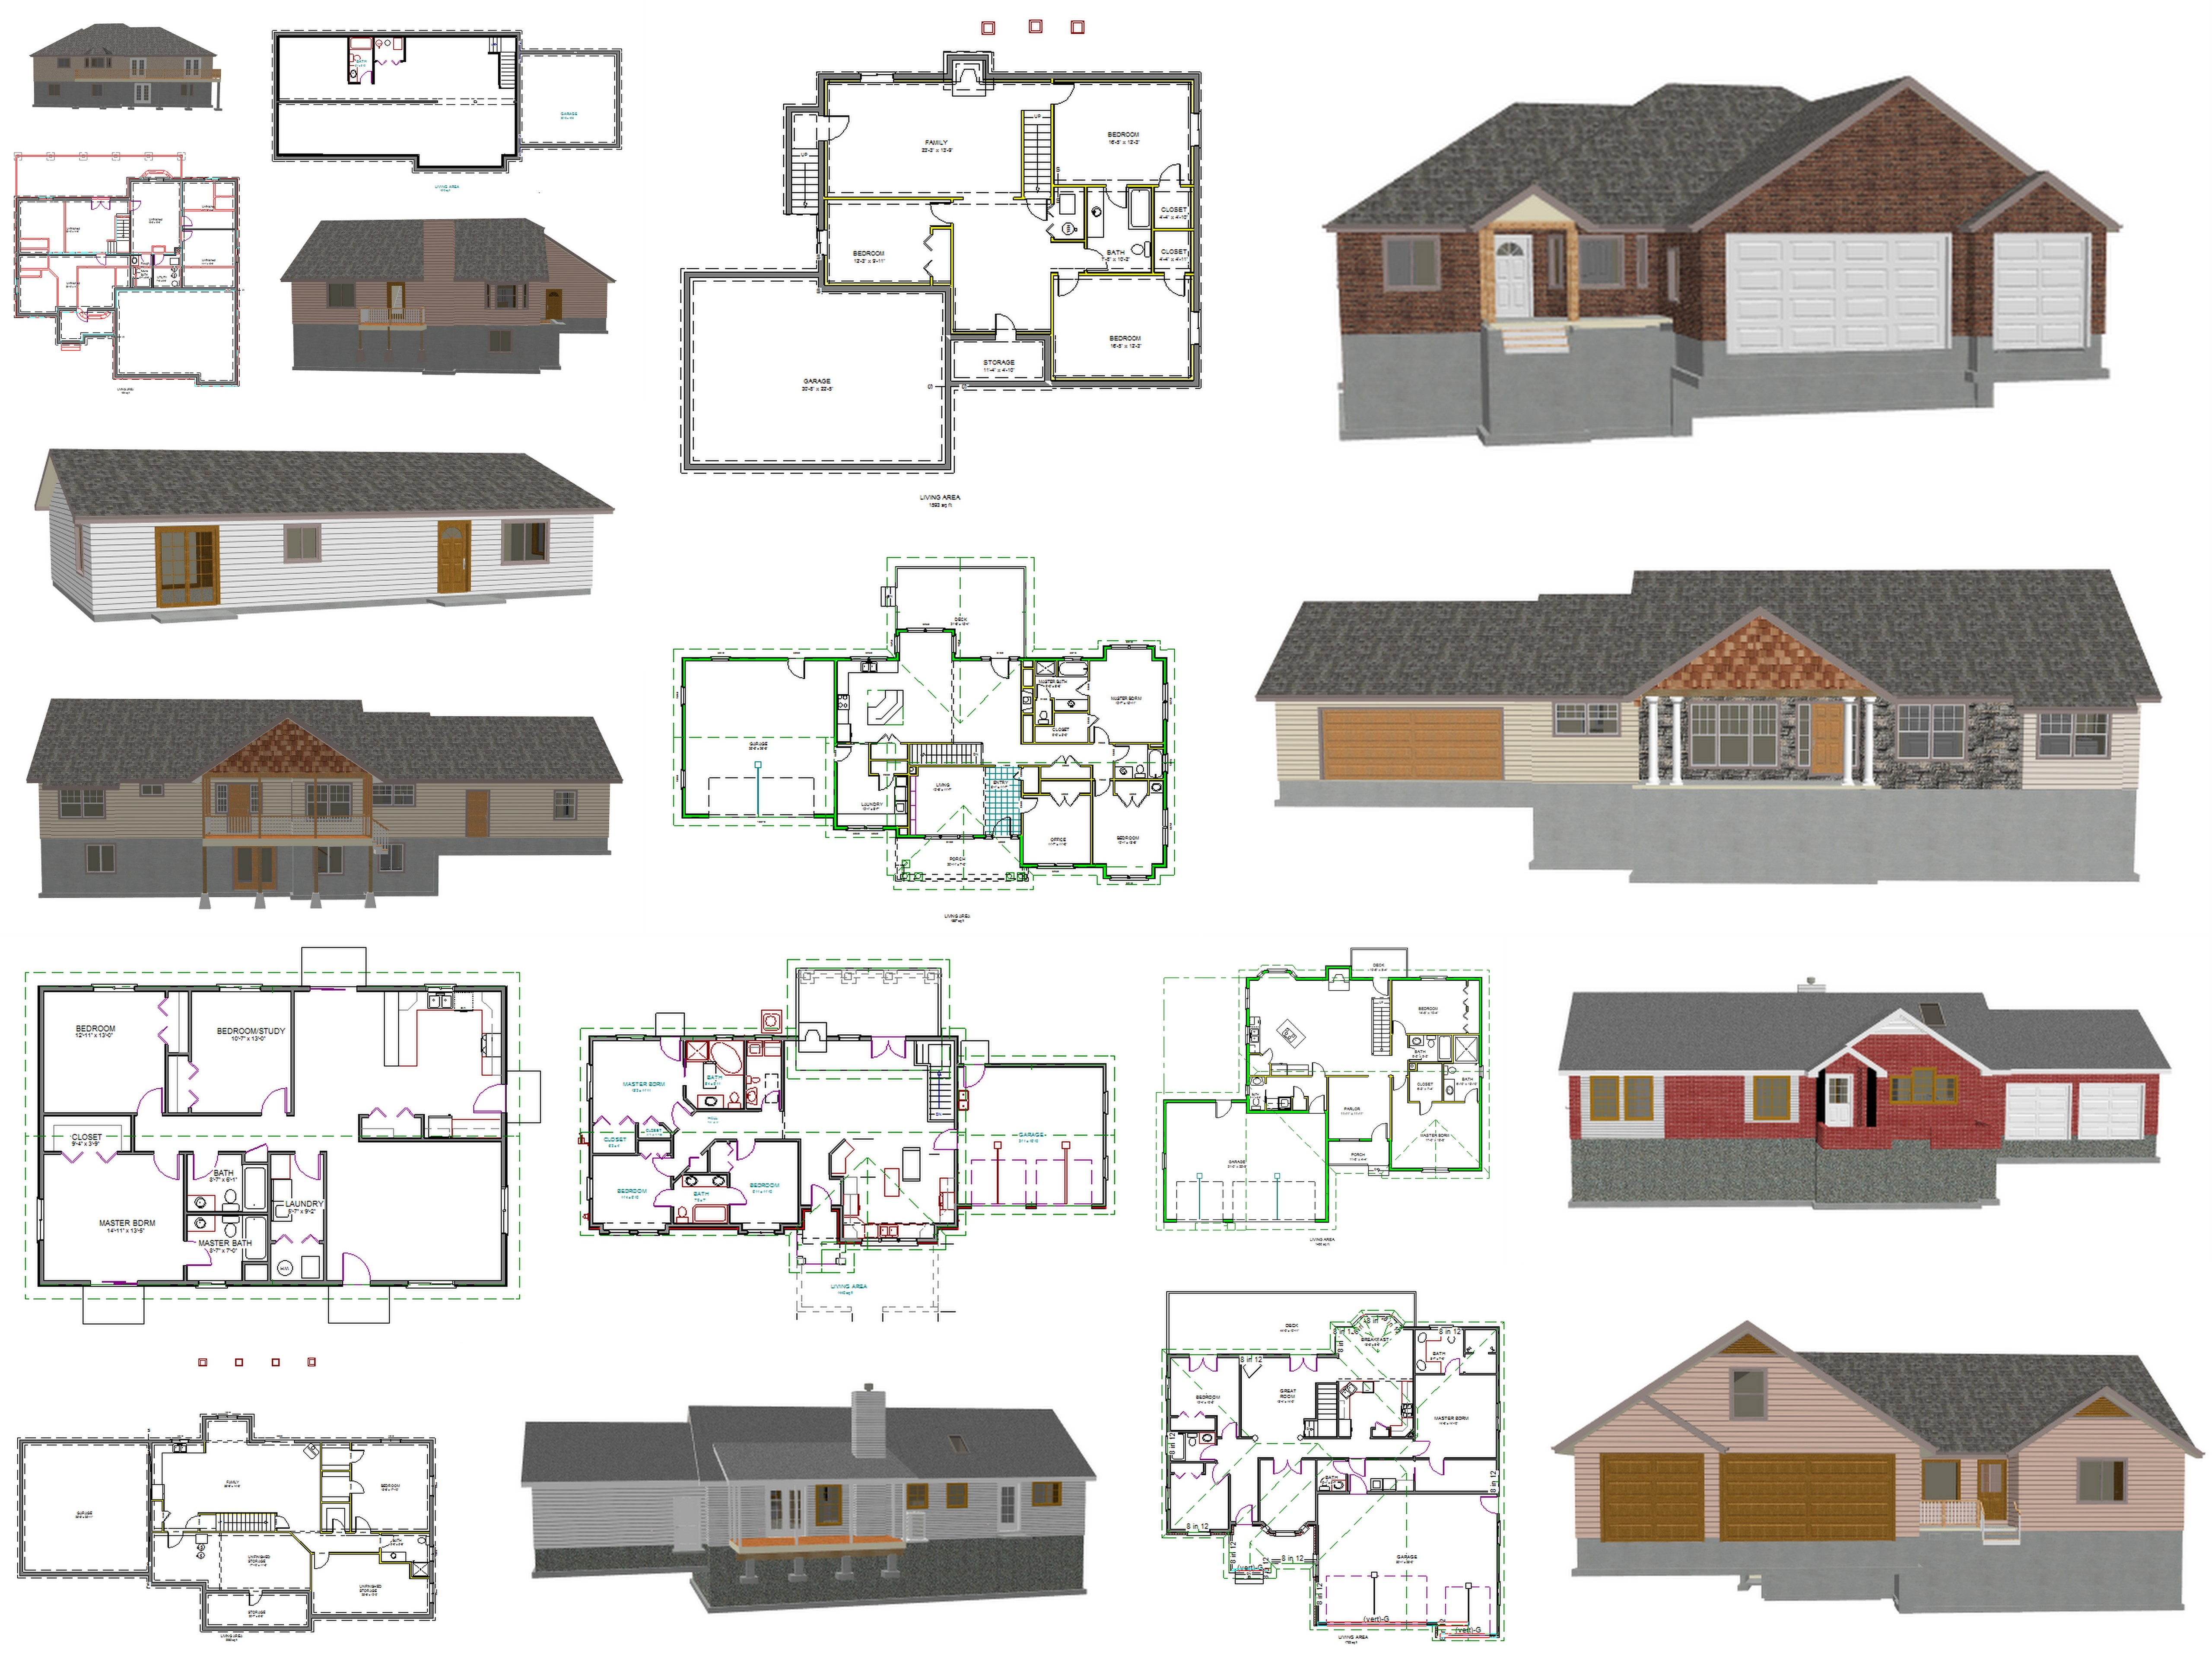 CAD House Plans Autoresponder | Garage with Apartment Plans on 2500 sq ft open floor house plans, 1800 sq ft open floor house plans, 1900 sq ft open floor house plans, 2400 sq ft open floor house plans, 1600 sq ft open floor house plans, 3000 sq ft open floor house plans, 2000 sq ft open floor house plans, 1500 sq ft open floor house plans,